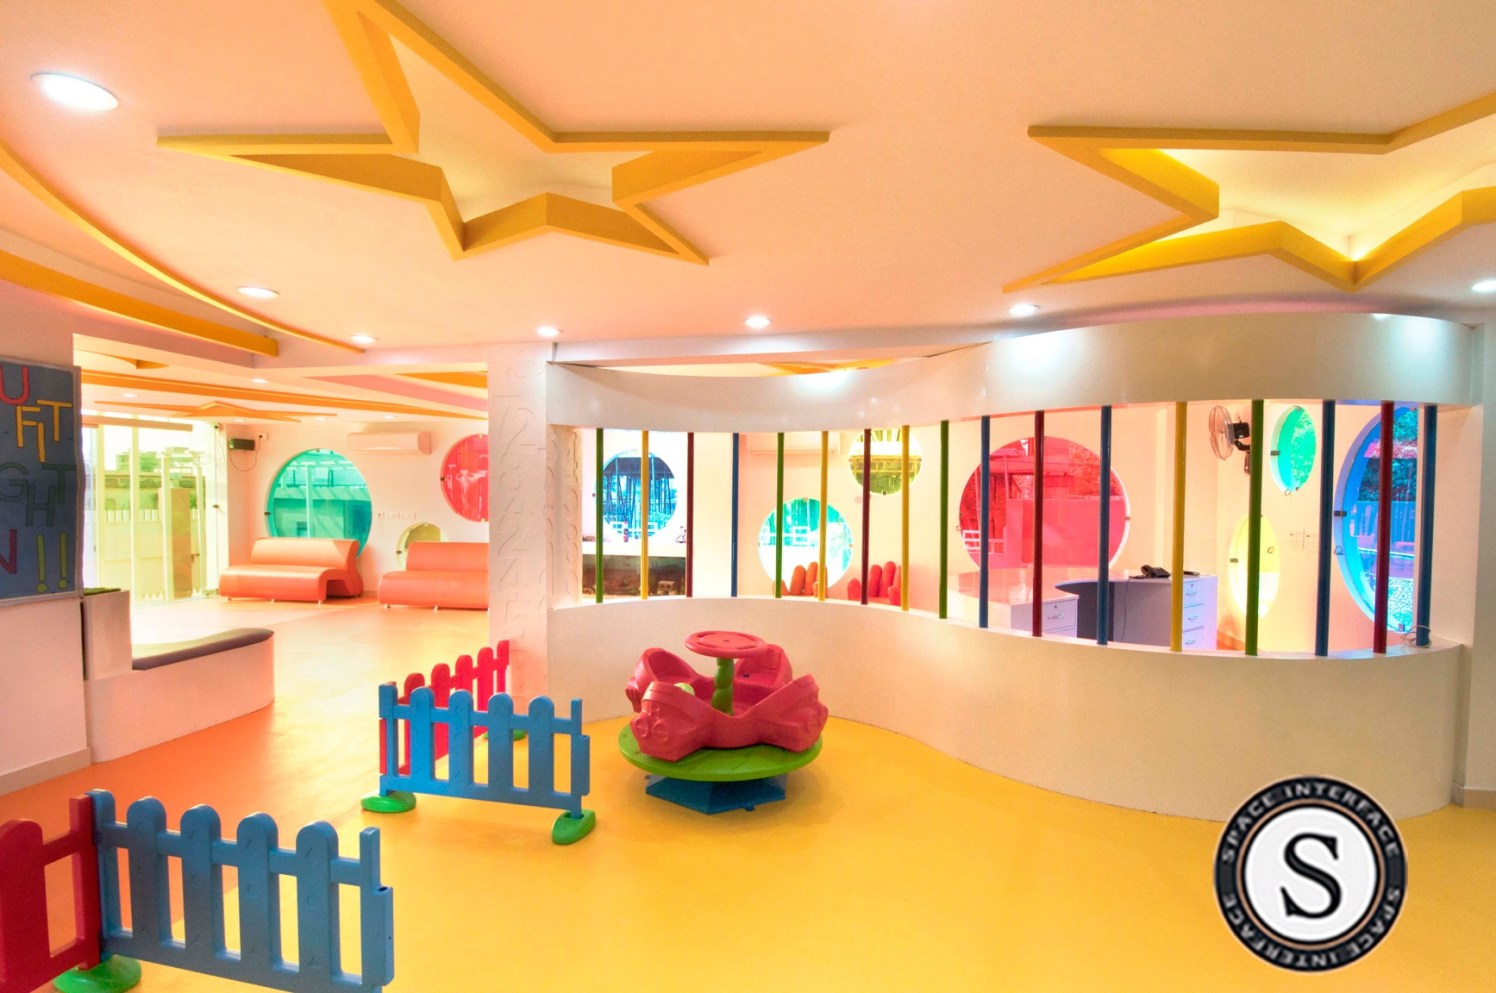 Playschool Design! by Space Interface - Architecture and Interior Design | Interior Design Photos & Ideas